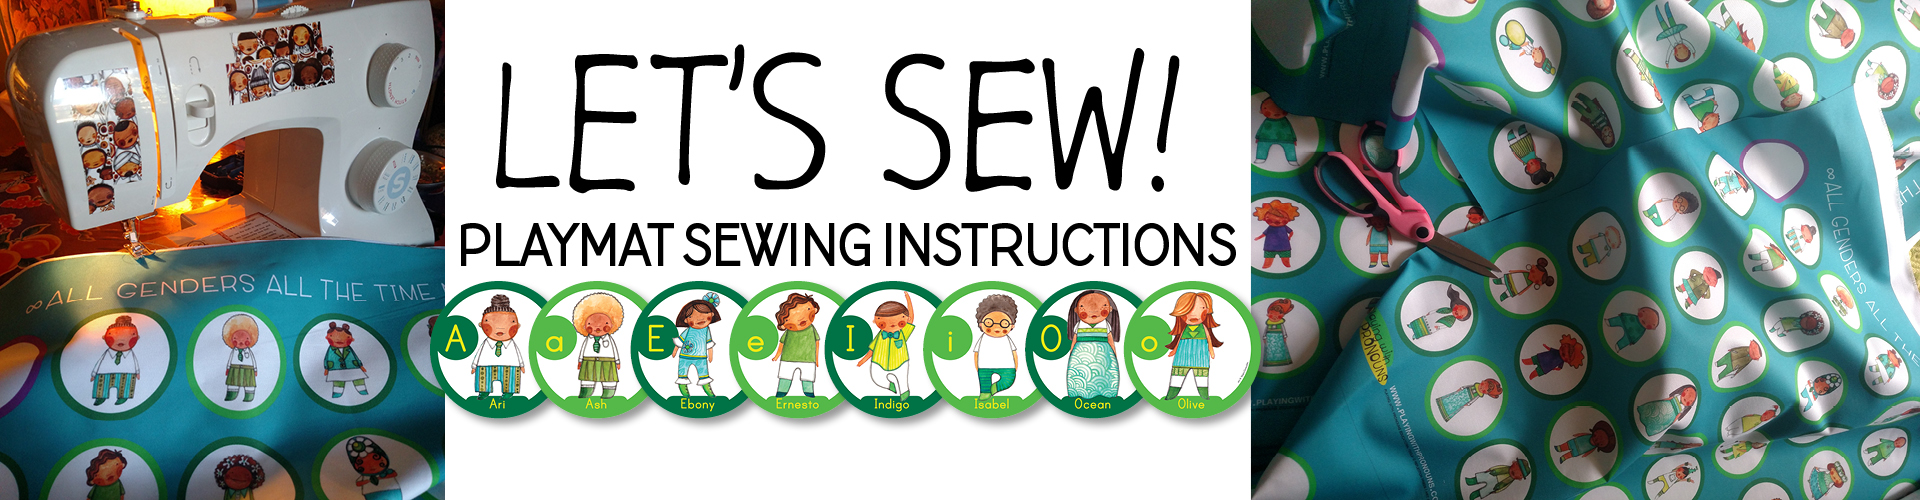 Playing with Pronouns Playmat Sewing Instructions